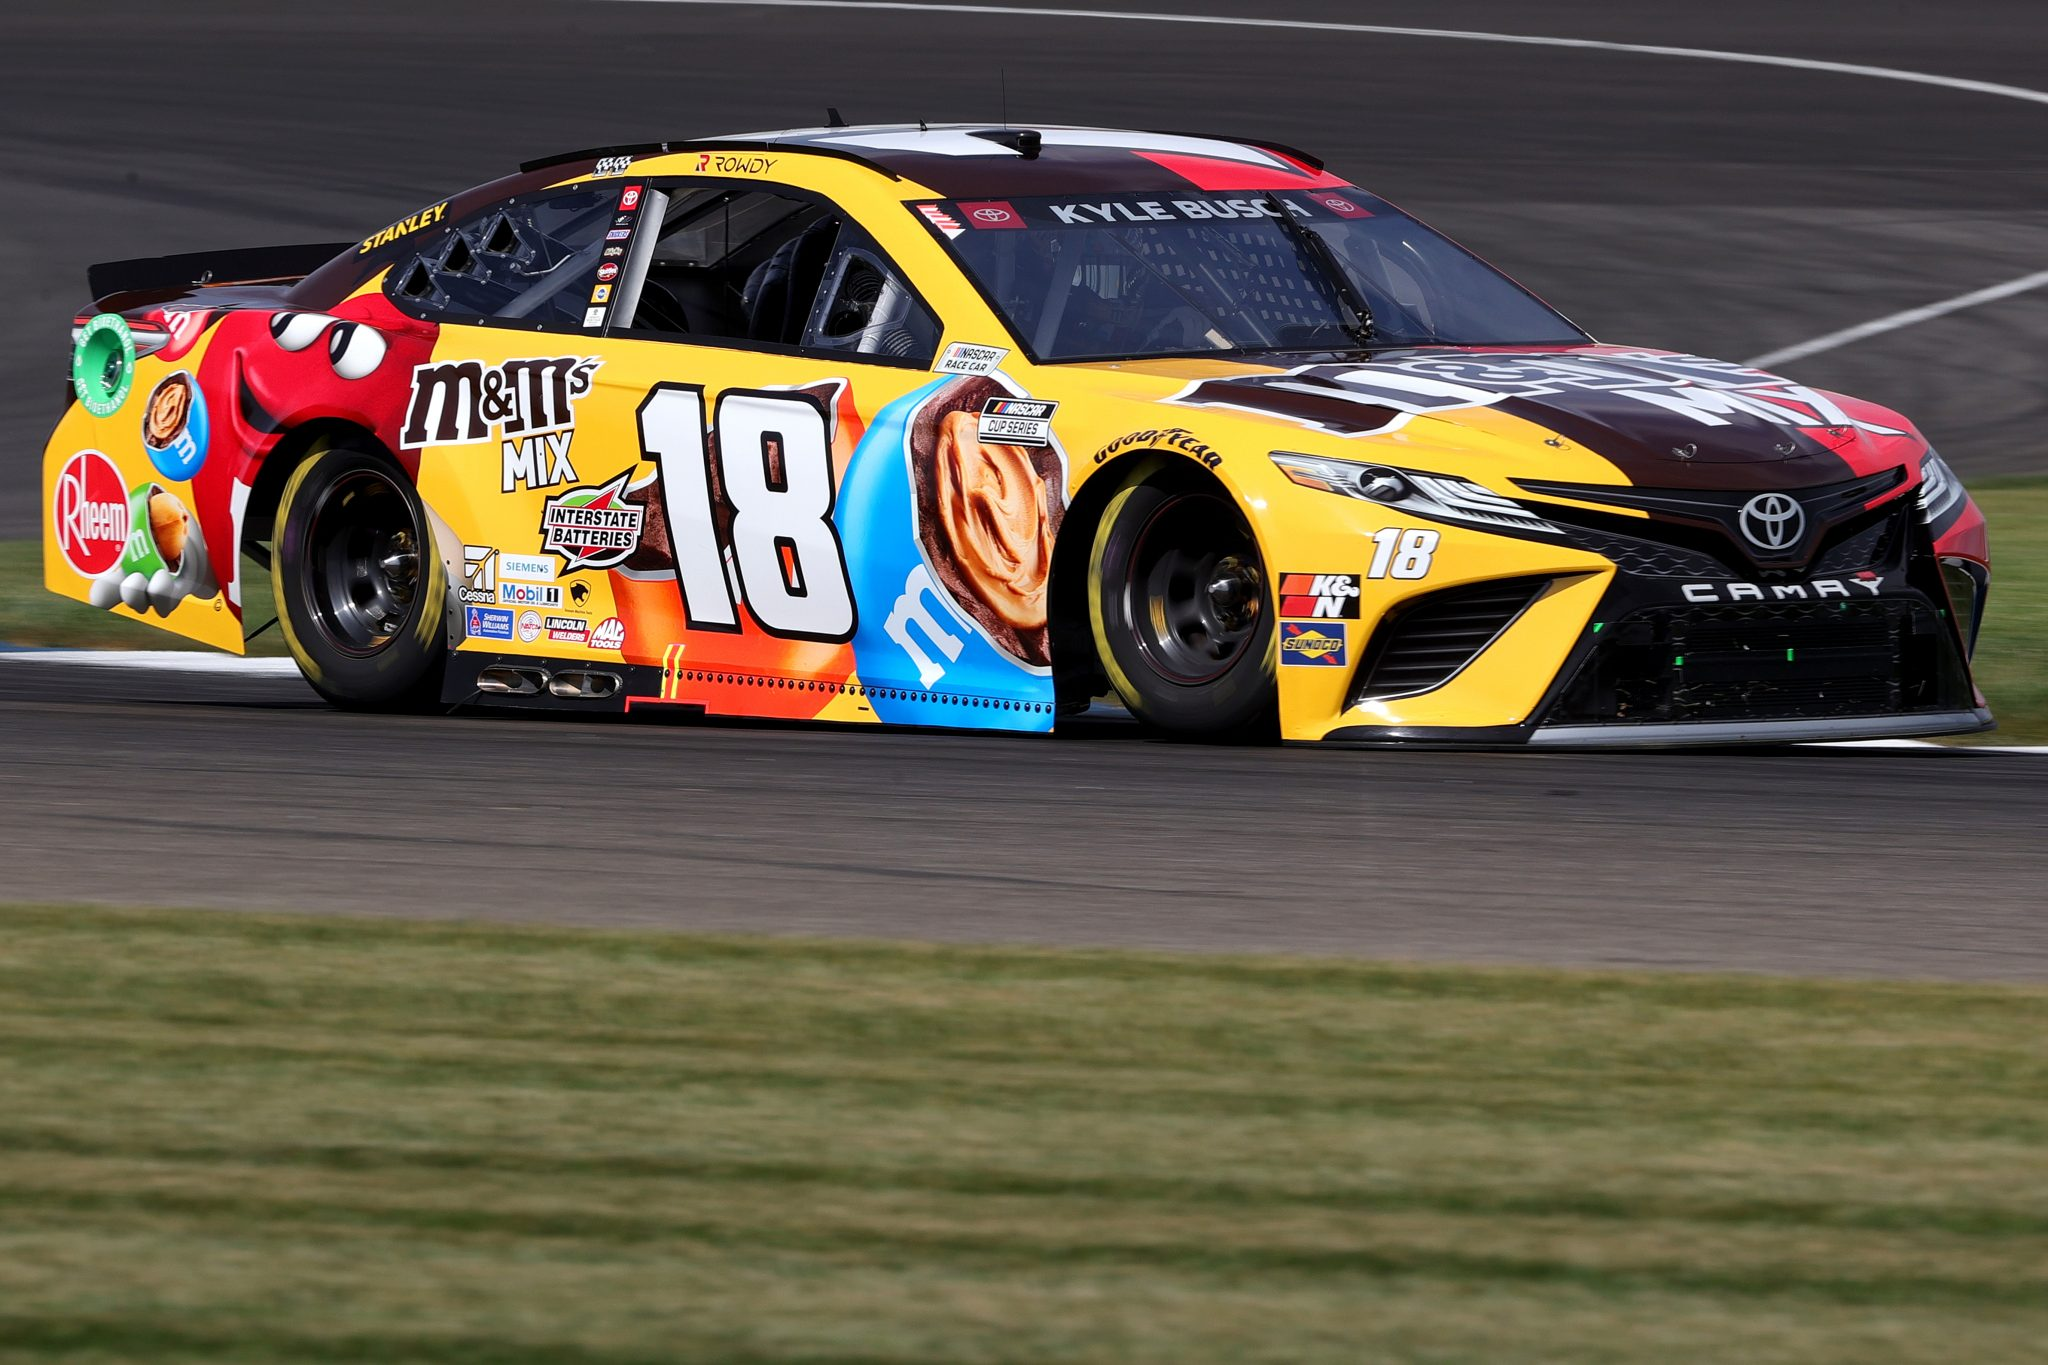 INDIANAPOLIS, INDIANA - AUGUST 14: Kyle Busch, driver of the #18 M&M's Mix Toyota, drives during practice for the NASCAR Cup Series Verizon 200 at the Brickyard at Indianapolis Motor Speedway on August 14, 2021 in Indianapolis, Indiana. (Photo by Stacy Revere/Getty Images) | Getty Images